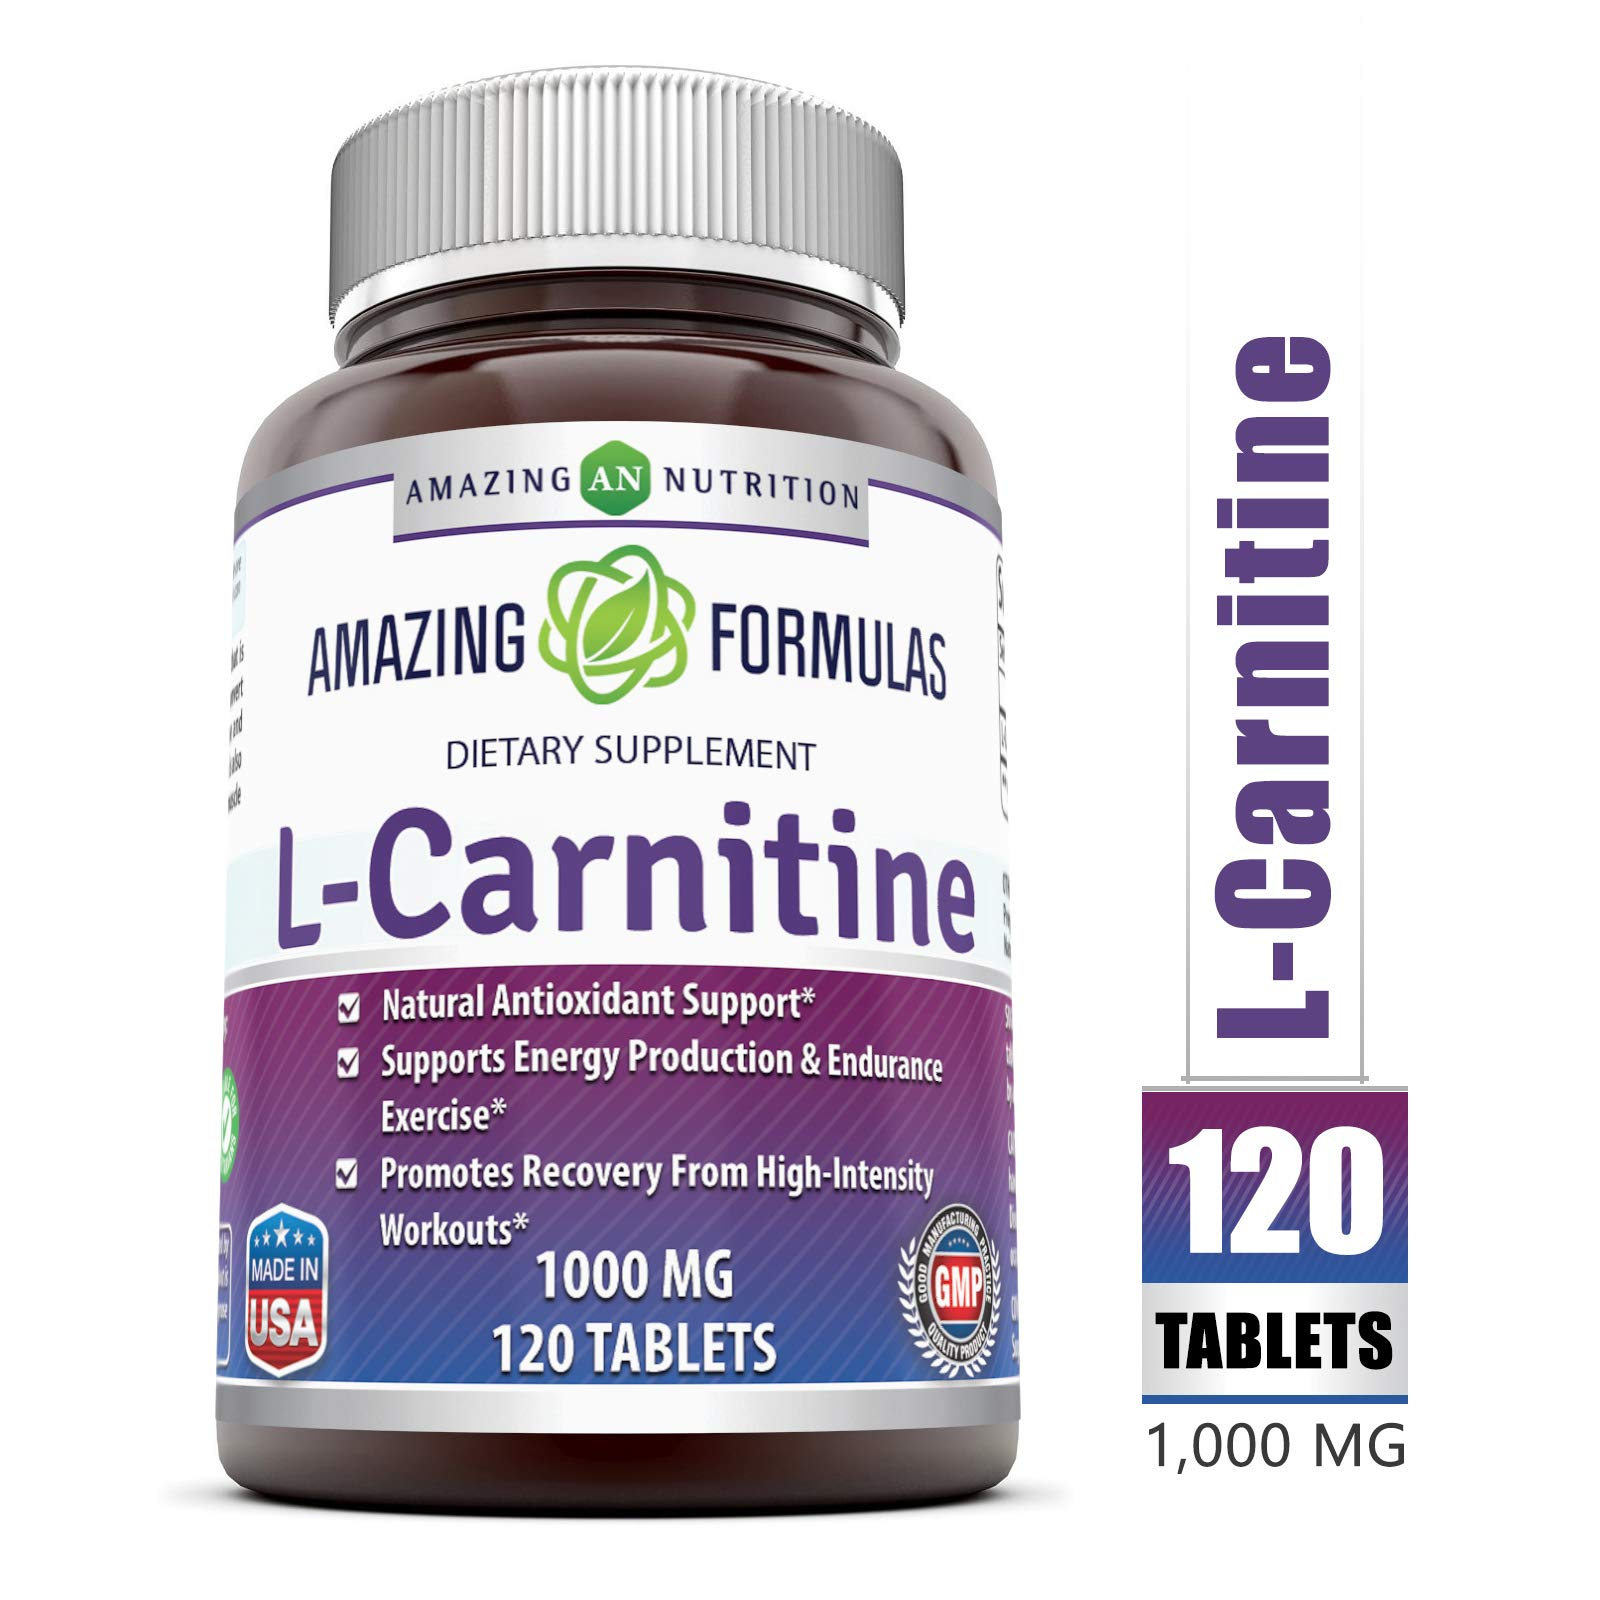 Amazing Formulas L Carnitine Fumarate Supplement - 1000 Mg, 120 Tablets (Non-GMO) - Natural Antioxidant Support - Supports Energy Prduction & Endurance Exercise - Promotes Recovery from High by Amazing Nutrition